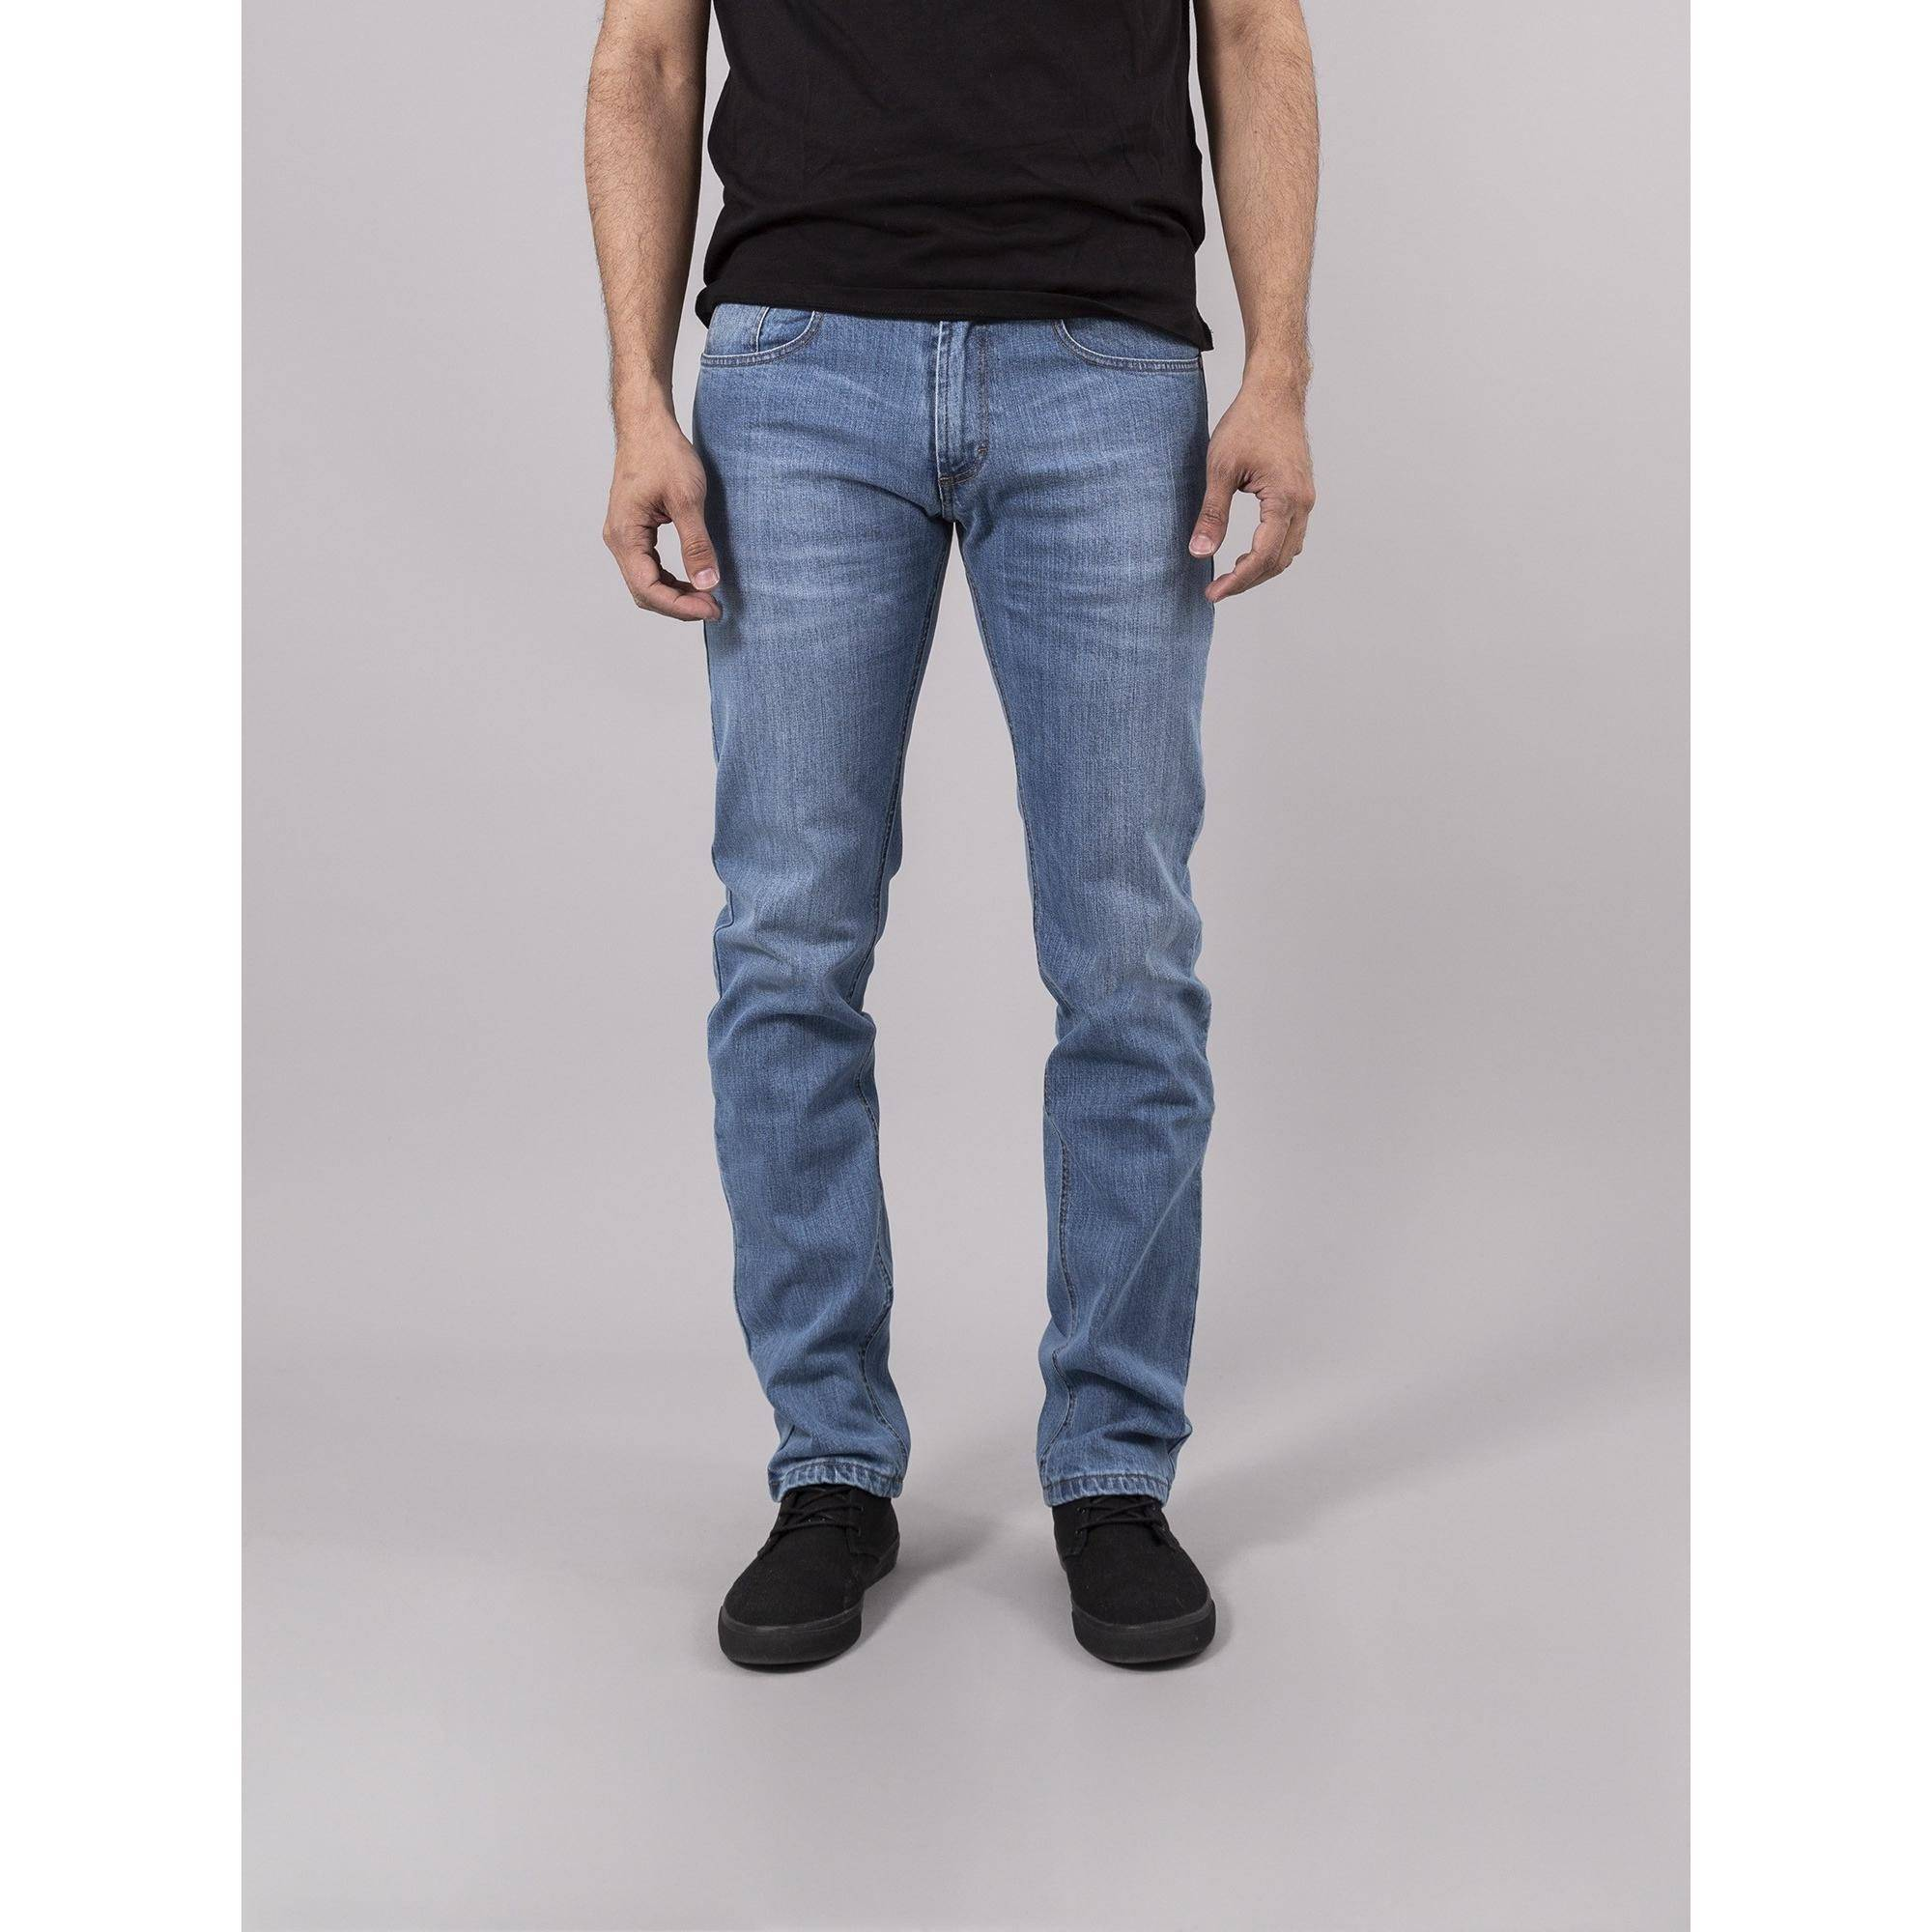 Capitán Denim Pantalones Ray Sunny Blue WATERLESS Capitán Denim 50